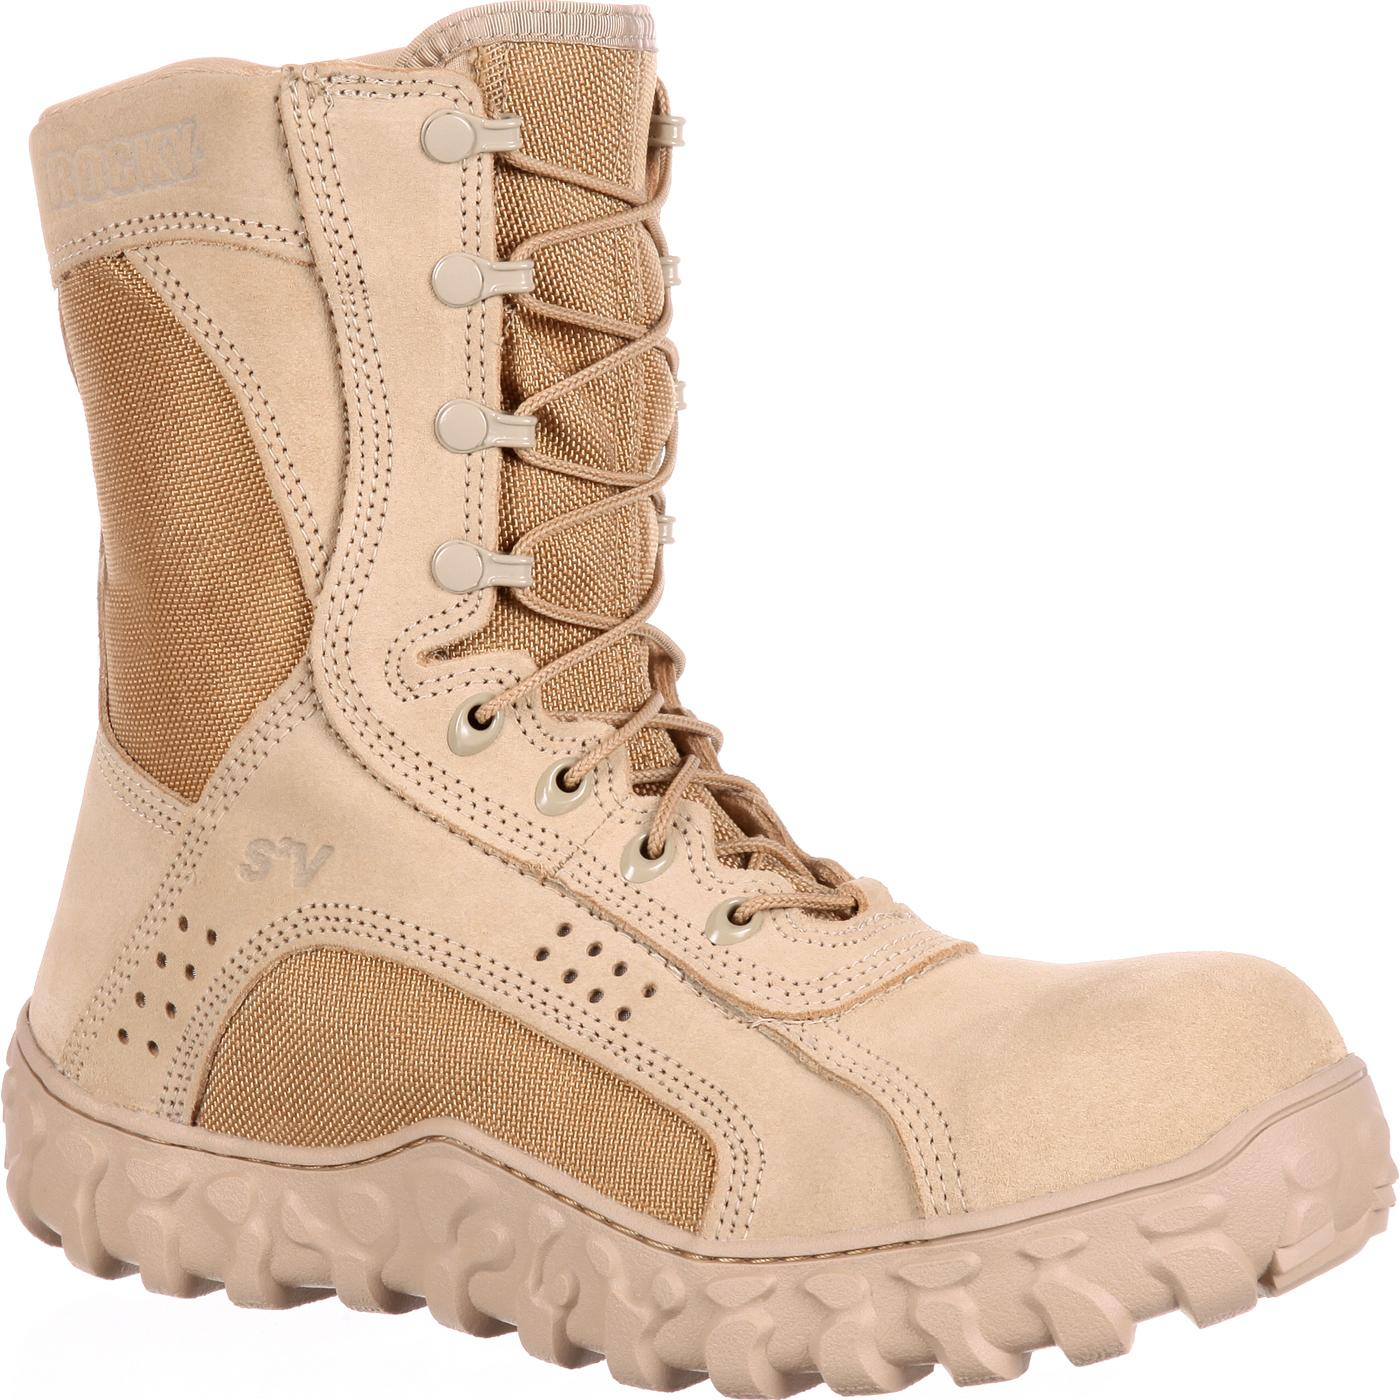 Composite Toe Tactical Military Boot Rocky S2v Rkyc028